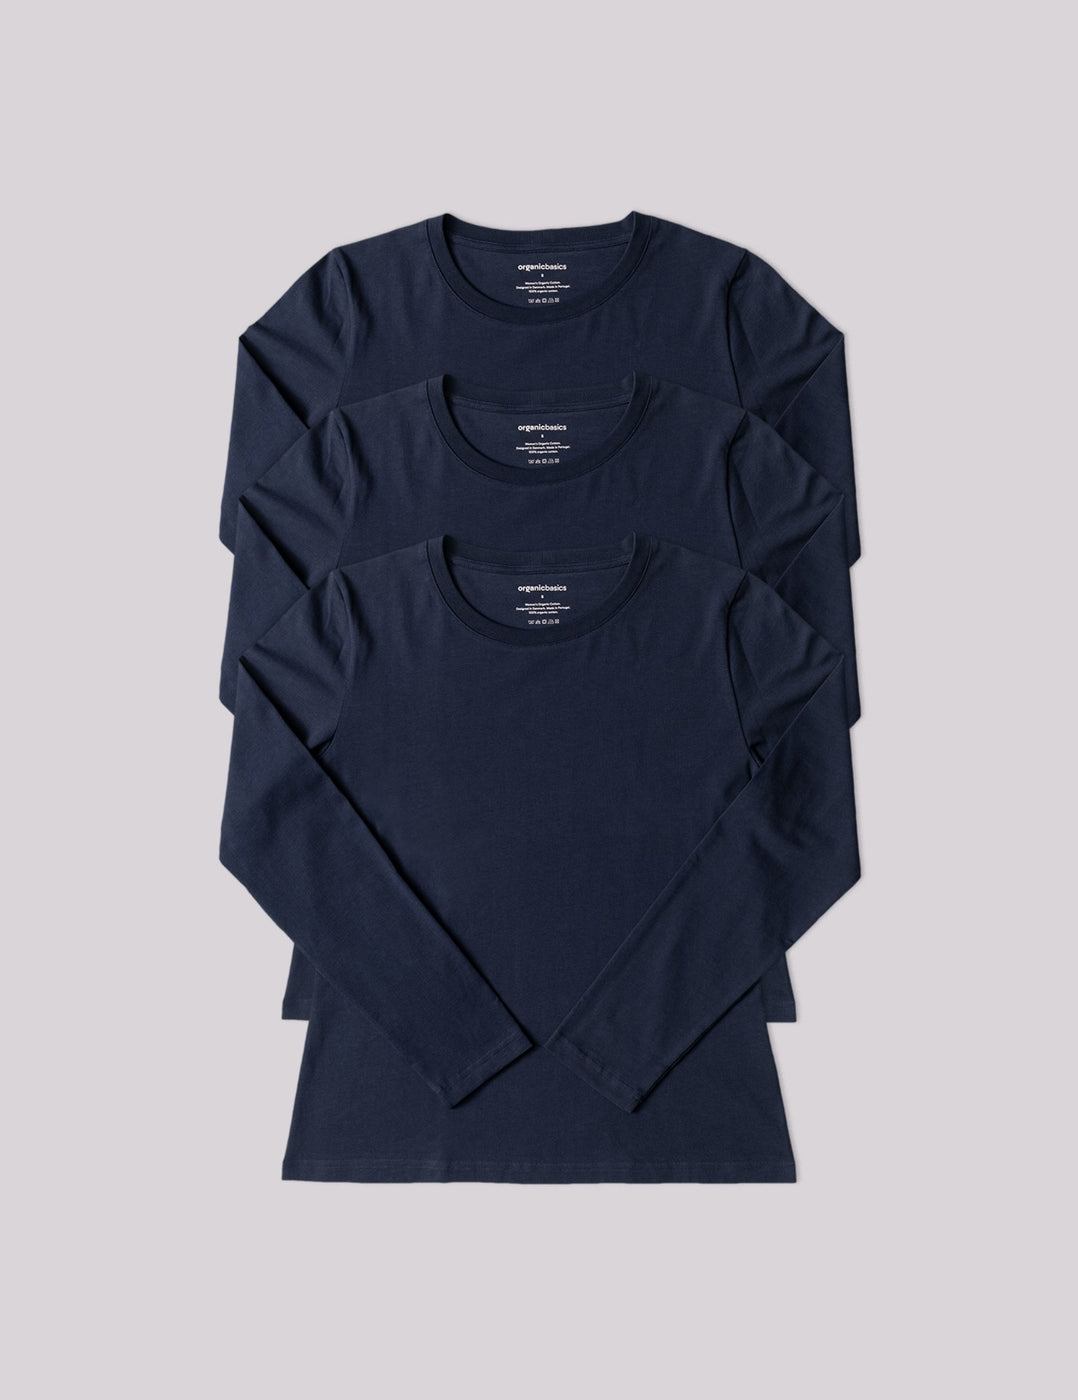 Organic Cotton Long-Sleeve Tee 3-pack